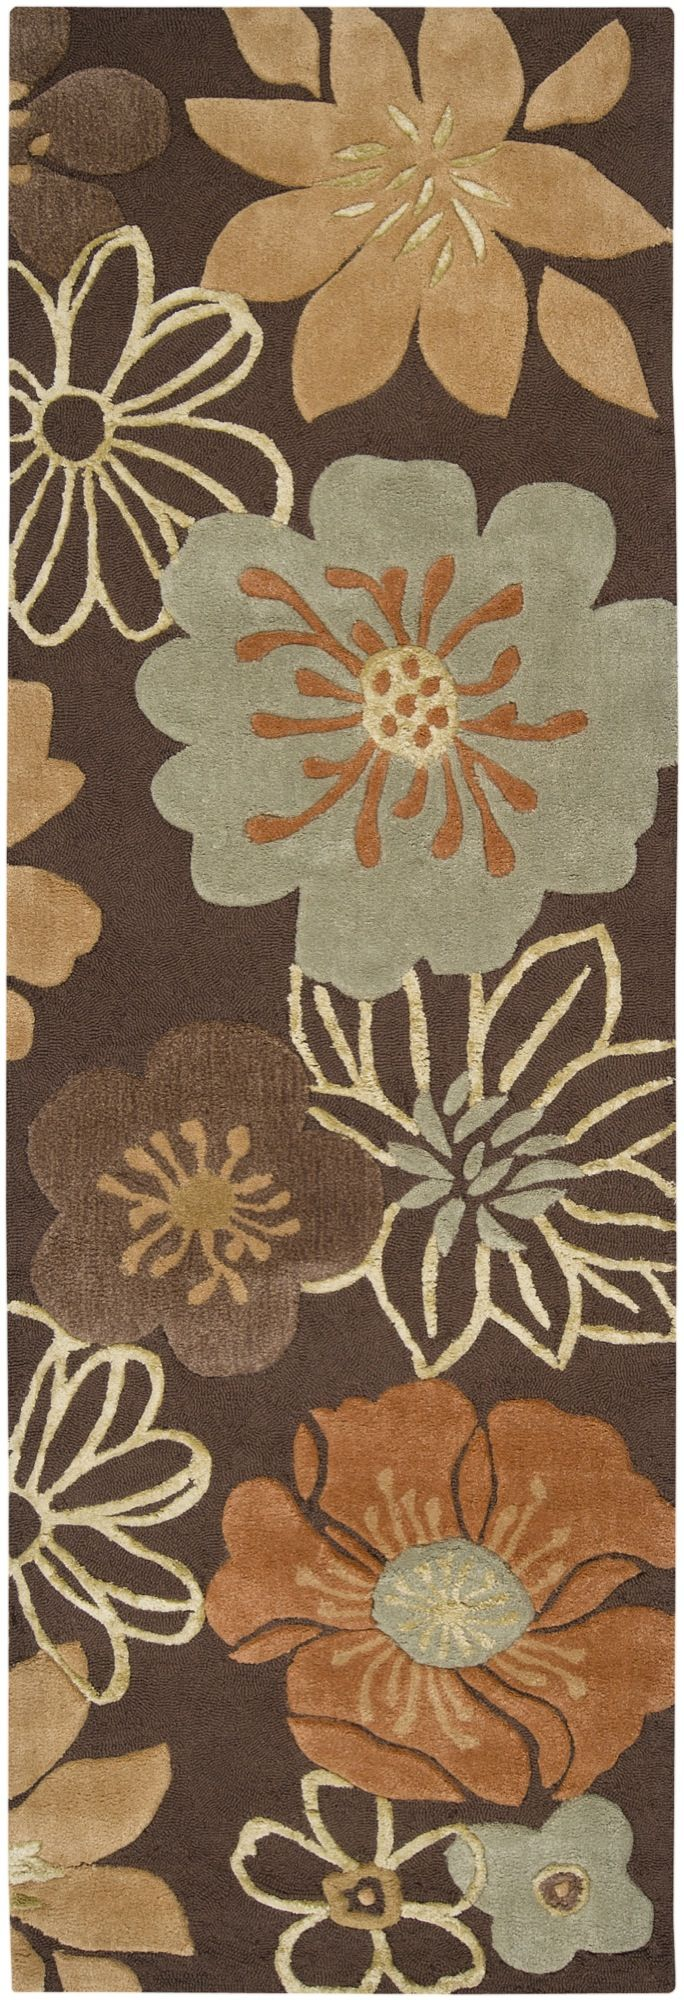 surya cosmo ultra country & floral area rug collection